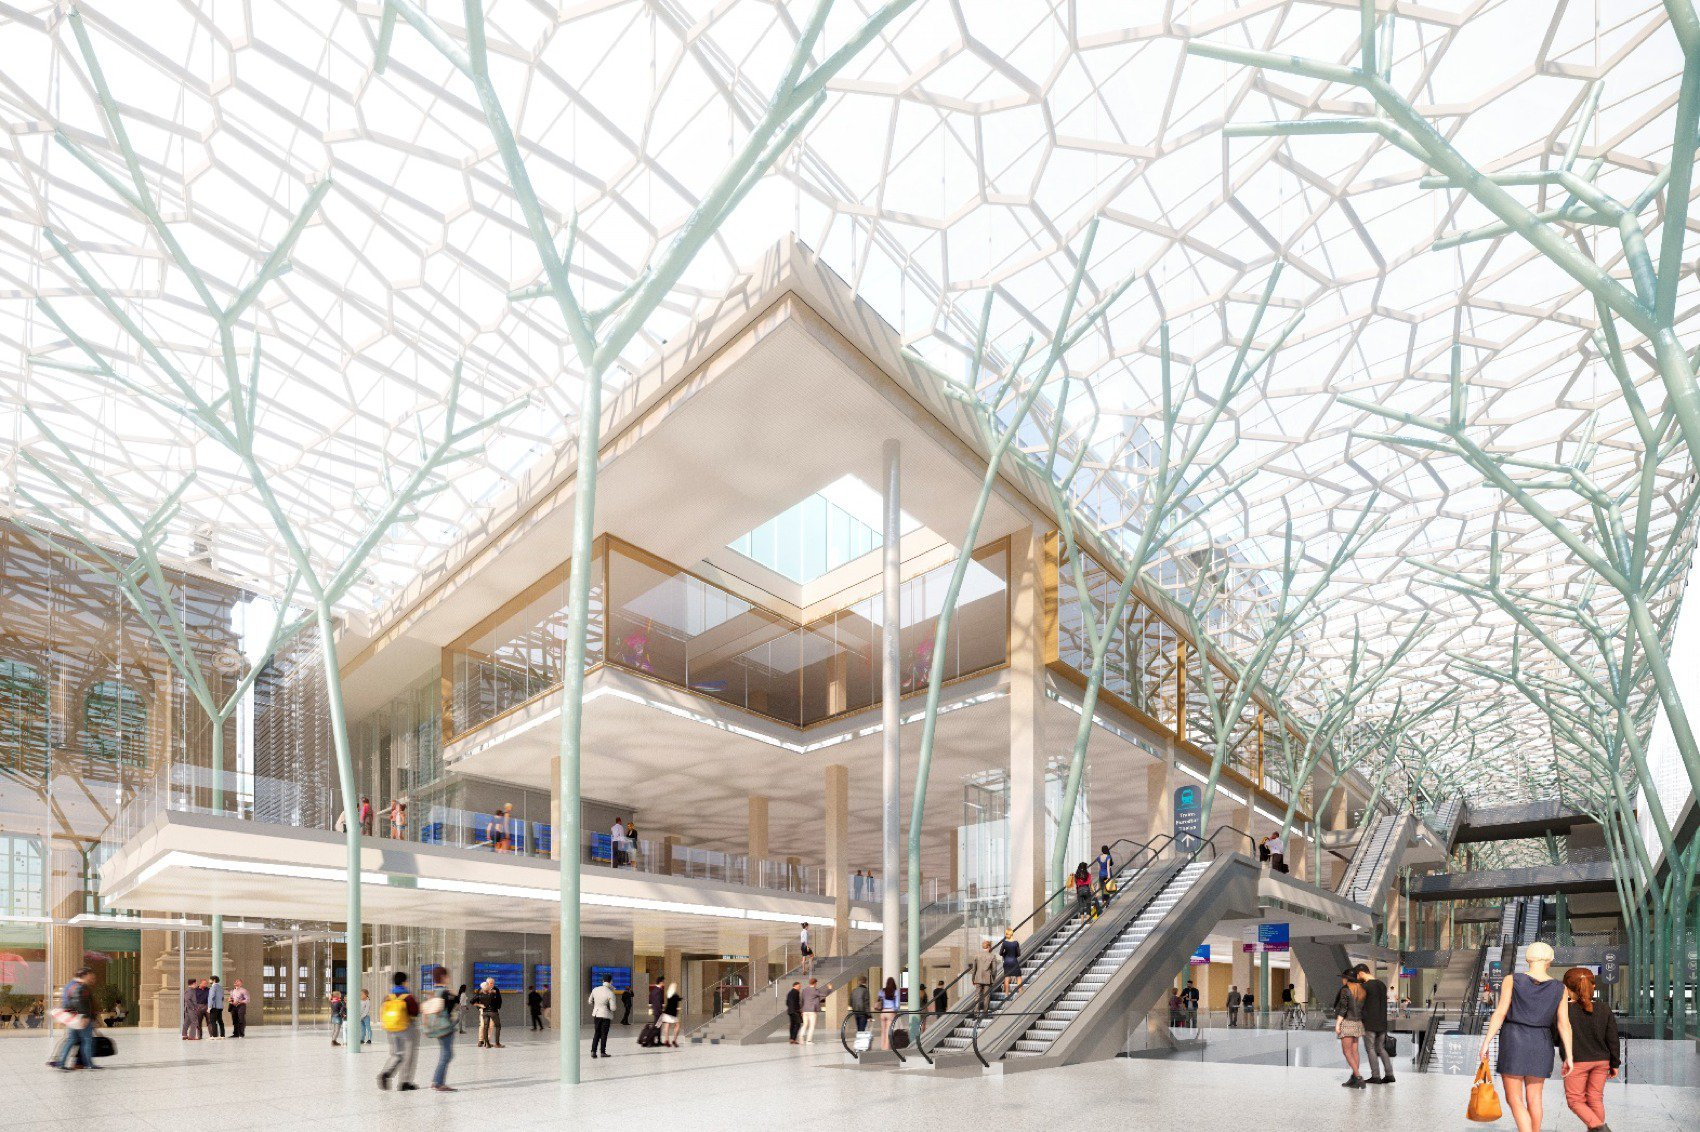 Gare du Nord rendering by SCNF